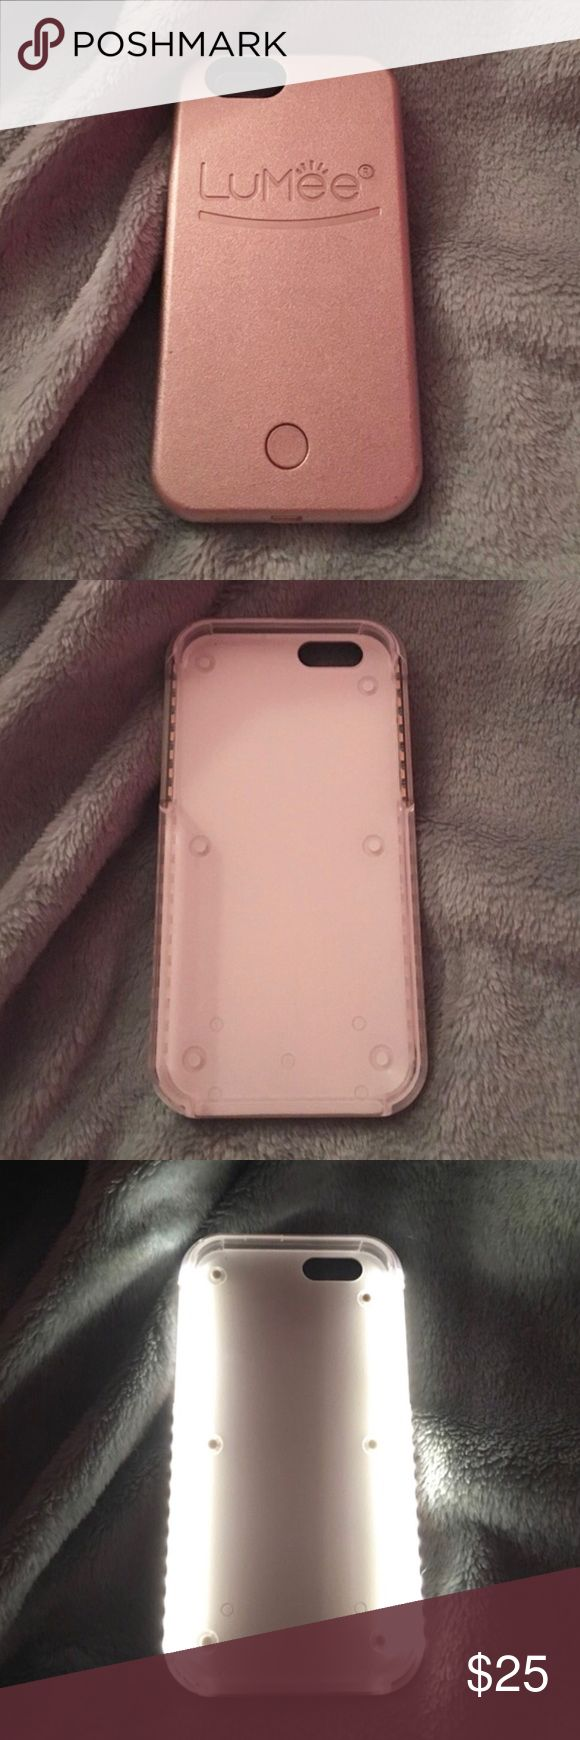 LuMee- iPhone 6/6s light up case- ROSE GOLD LuMee light up case is in great condition as it's only been used a handful of times and if even that. Now have an iPhone PLUS so this no longer fits. LuMee Accessories Phone Cases